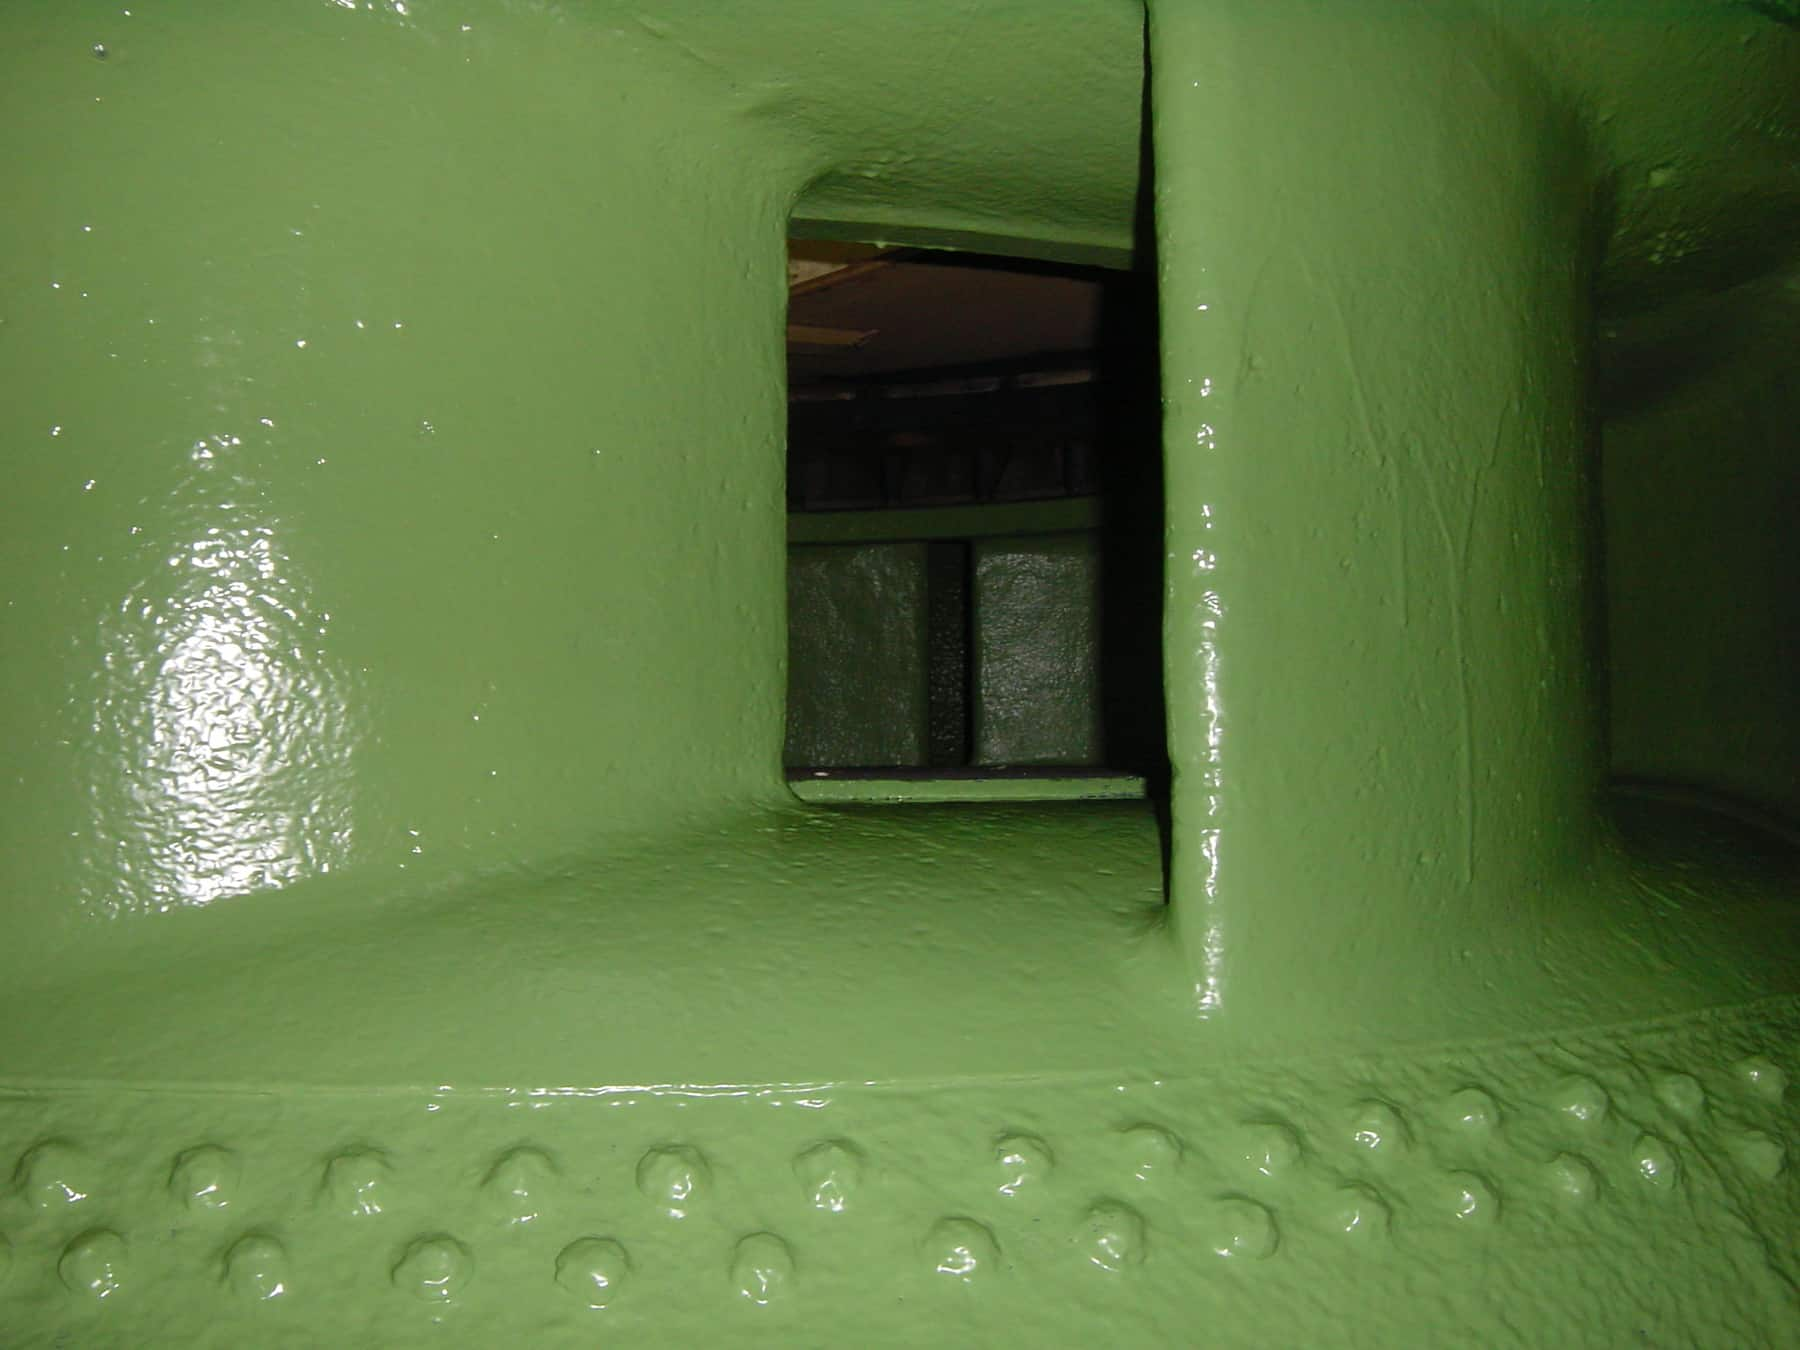 internal spiral casing painted in green